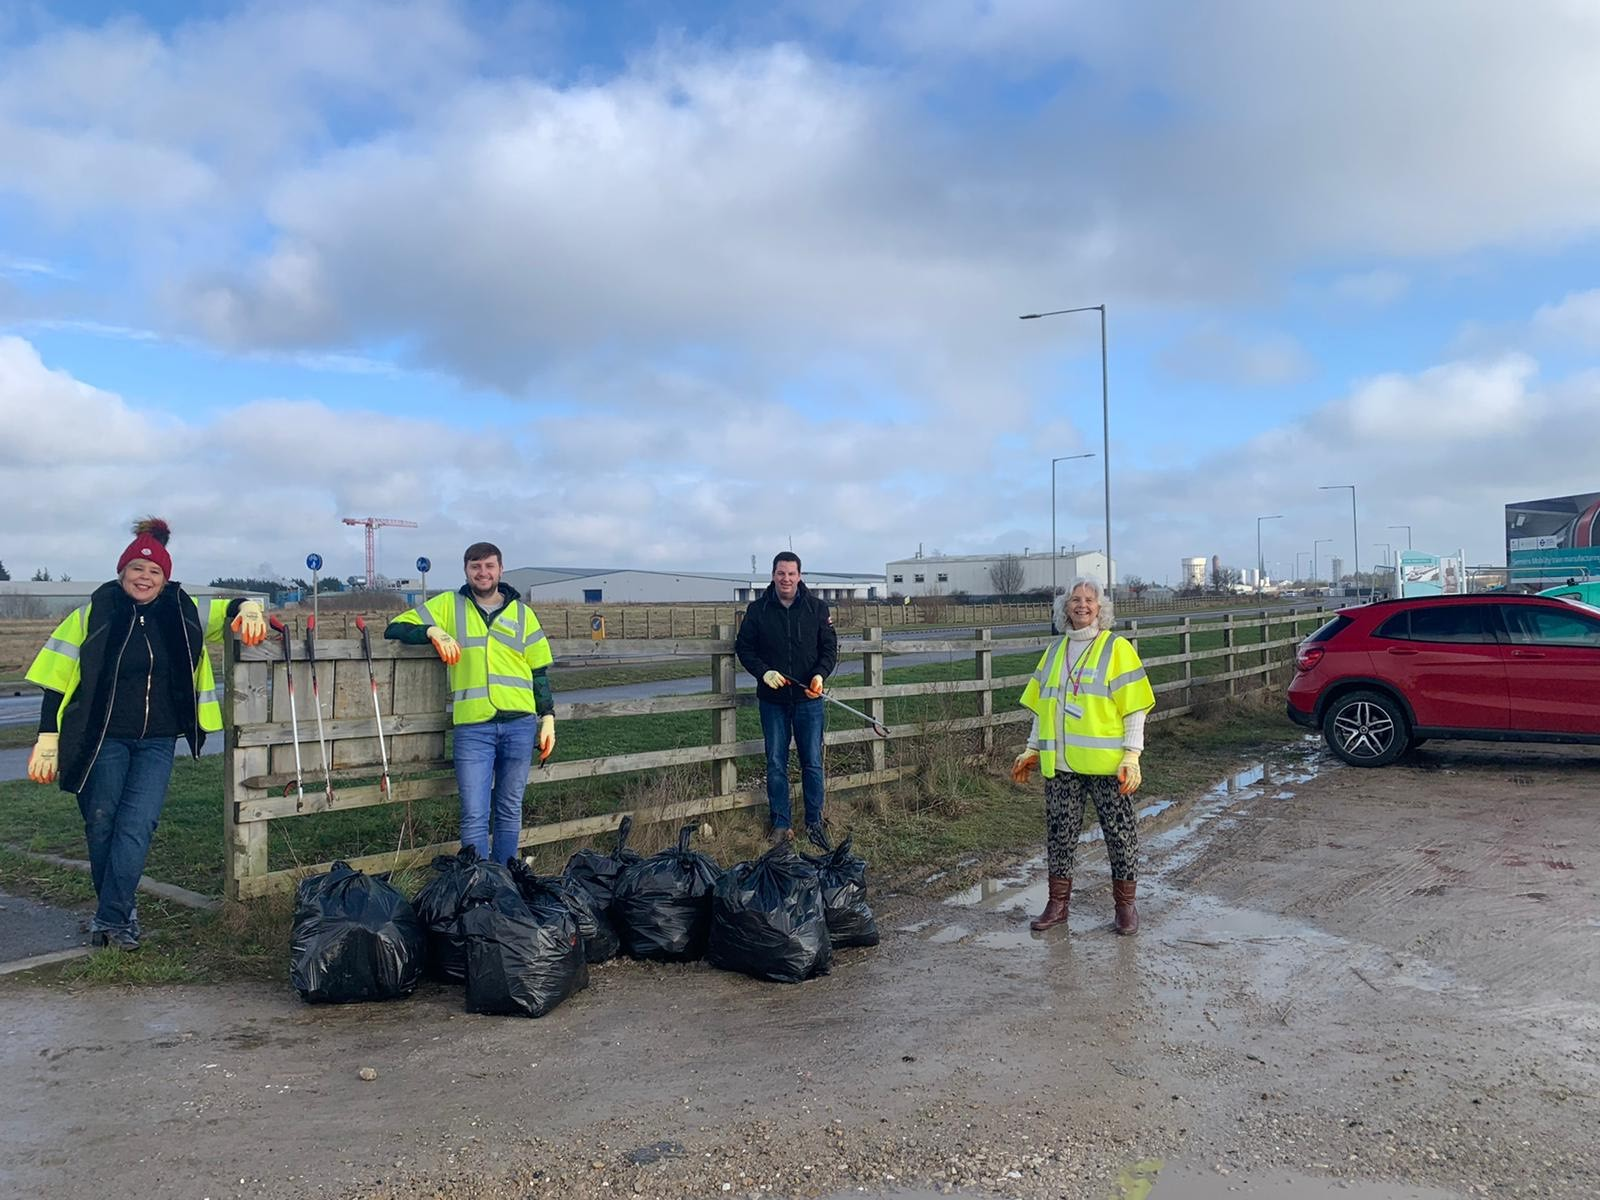 Andrew 'pledges to pick' as Keep Britain Tidy launches its massive Great British Spring Clean.